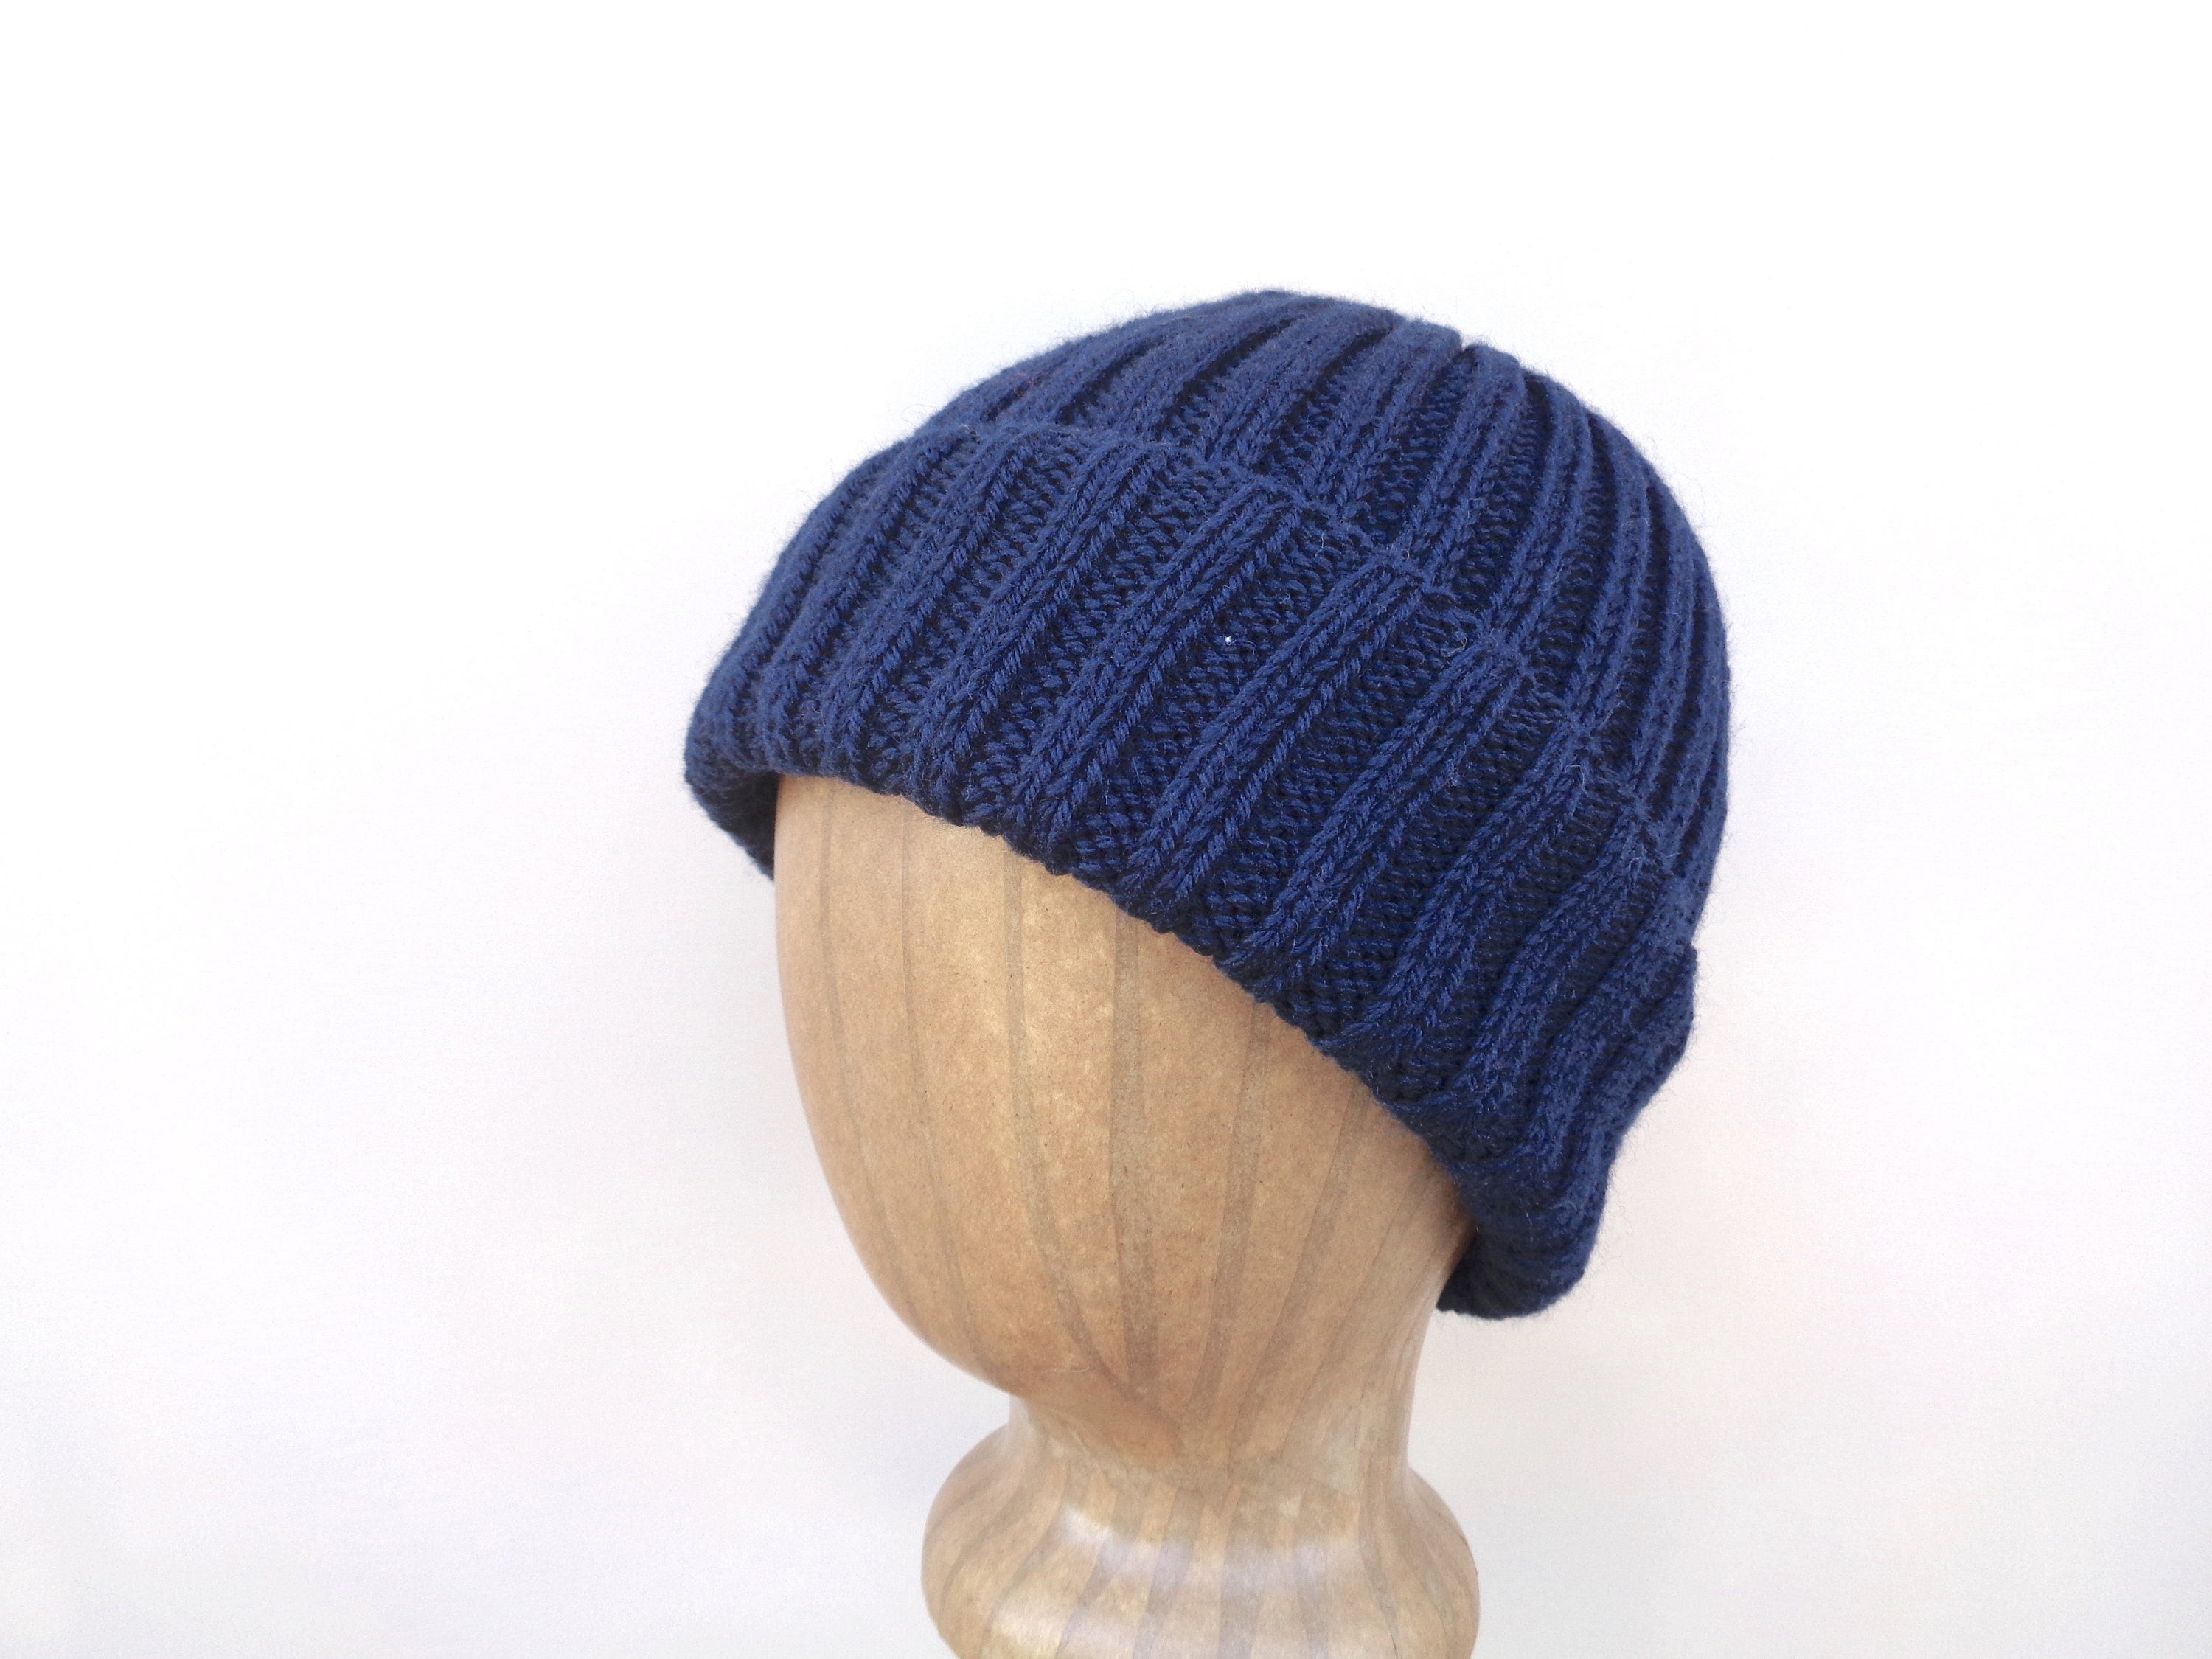 26a18416d19 Navy Blue Wool Hat Hand Knit Watch Cap Peruvian Wool Men